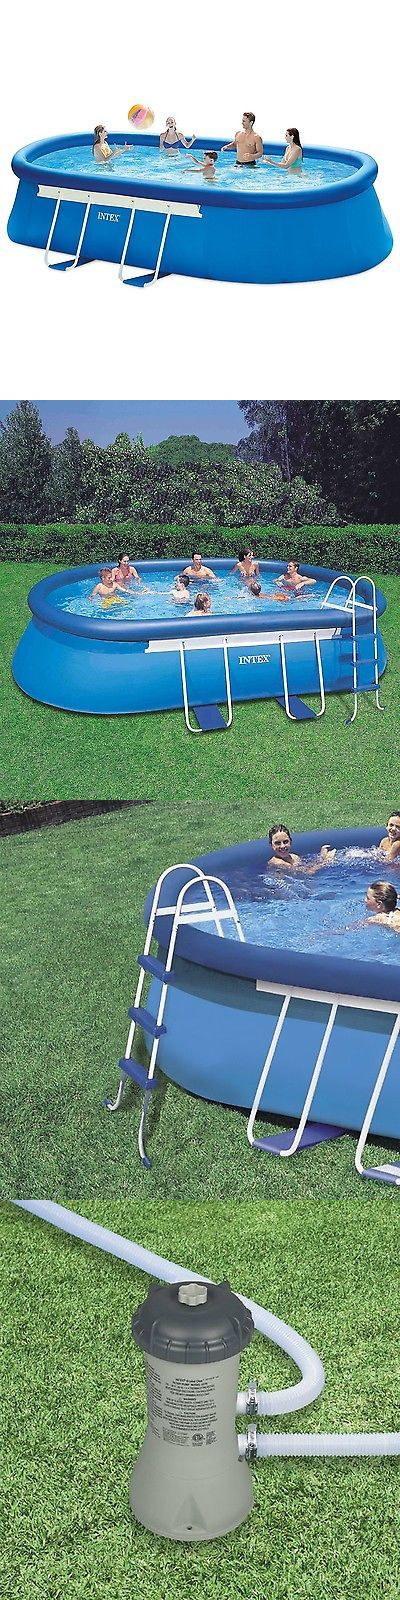 Above-Ground Pools 116405: Intex 18Ft X 10Ft X 42In Oval Frame Pool Set With Filter Pump Ladder Ground C... -> BUY IT NOW ONLY: $298.1 on eBay!